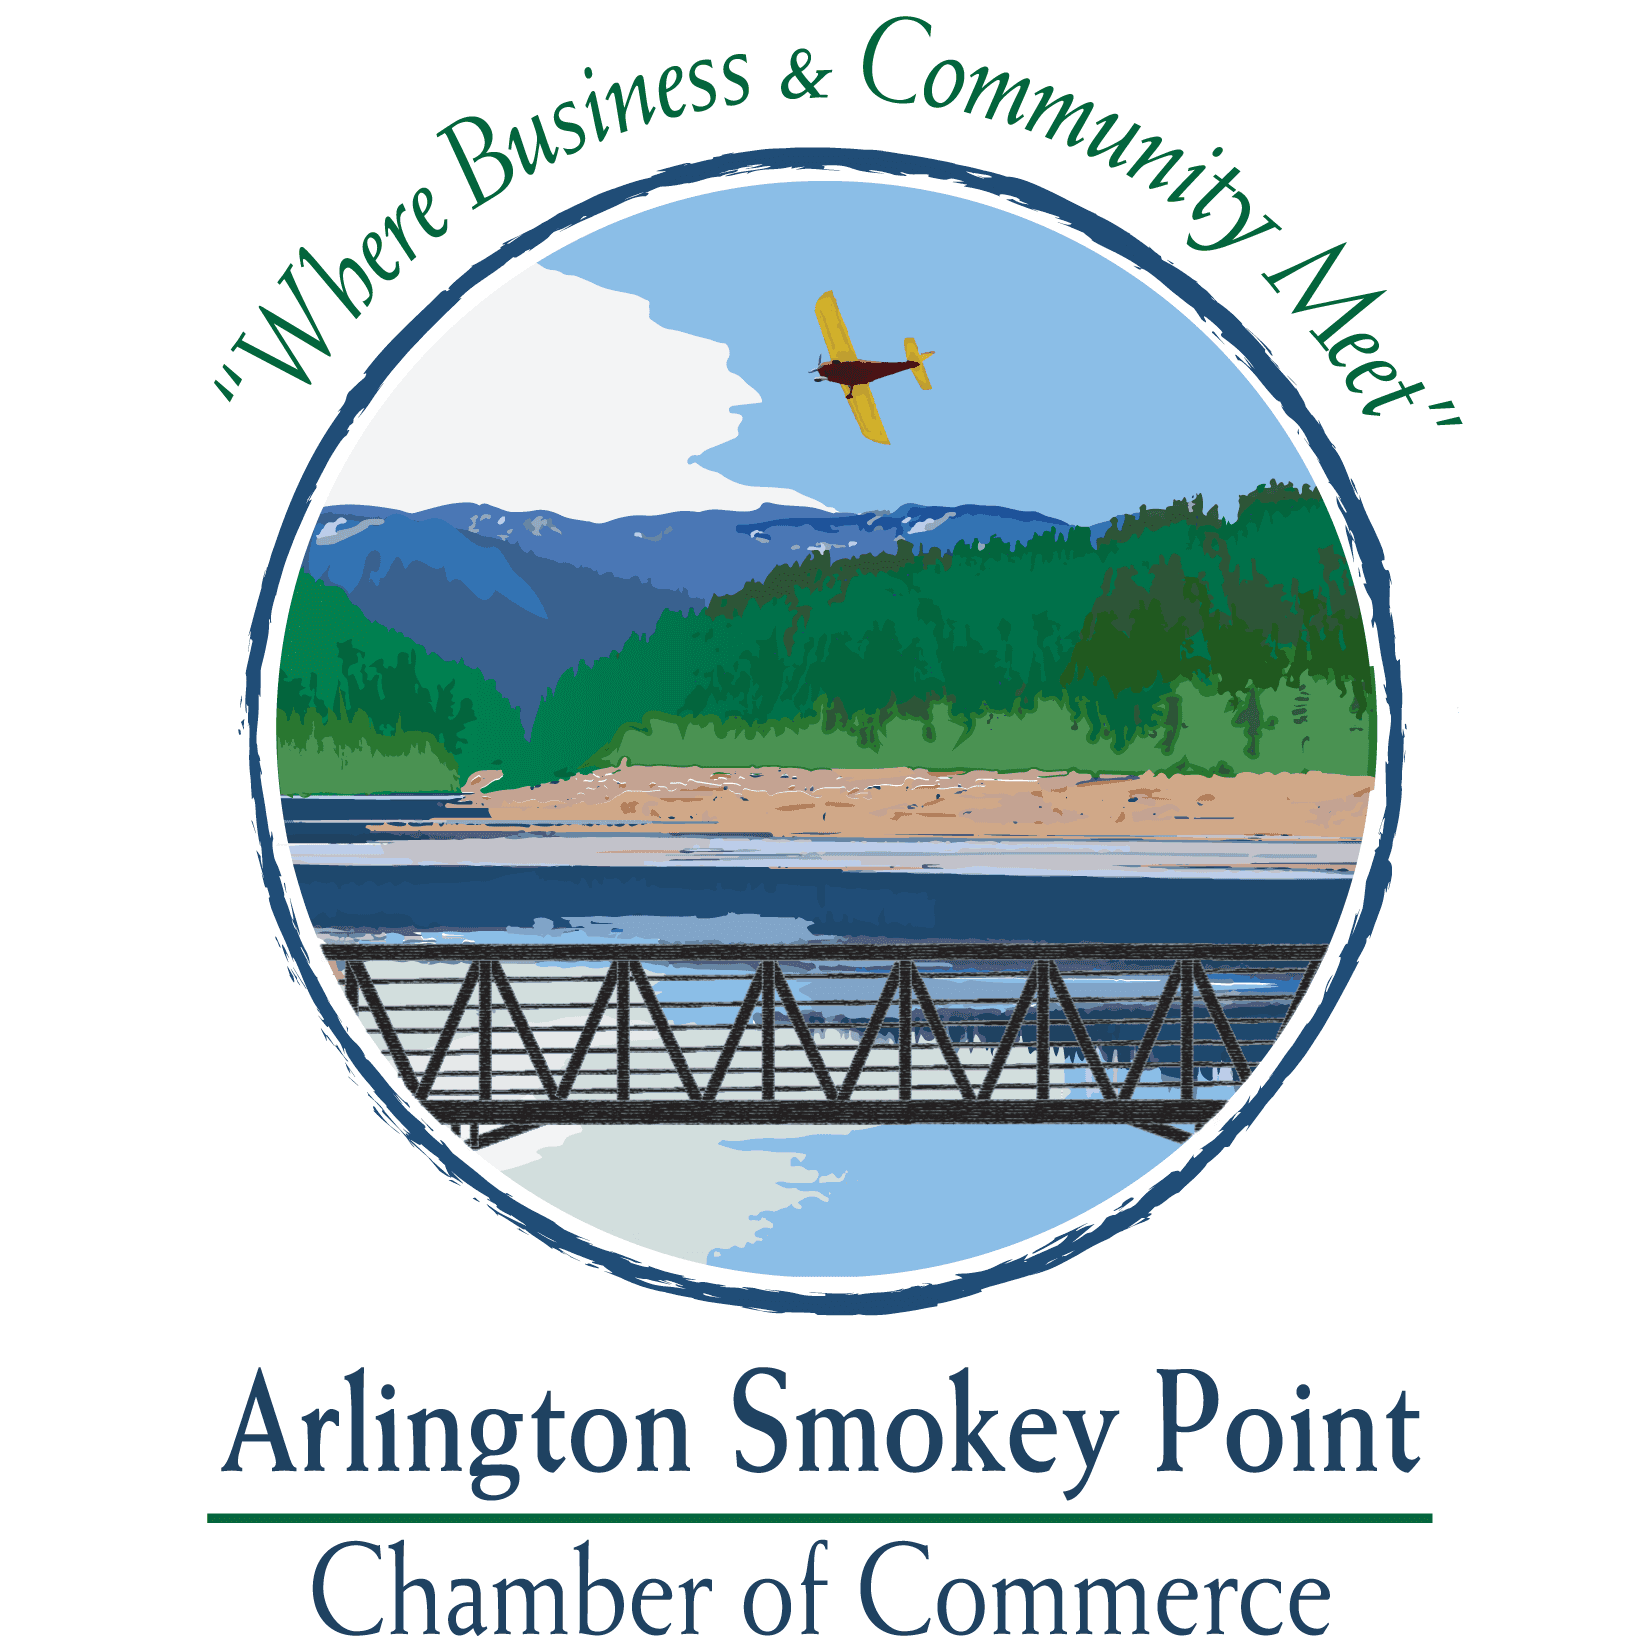 Arlington-Smokey Point Chamber of Commerce